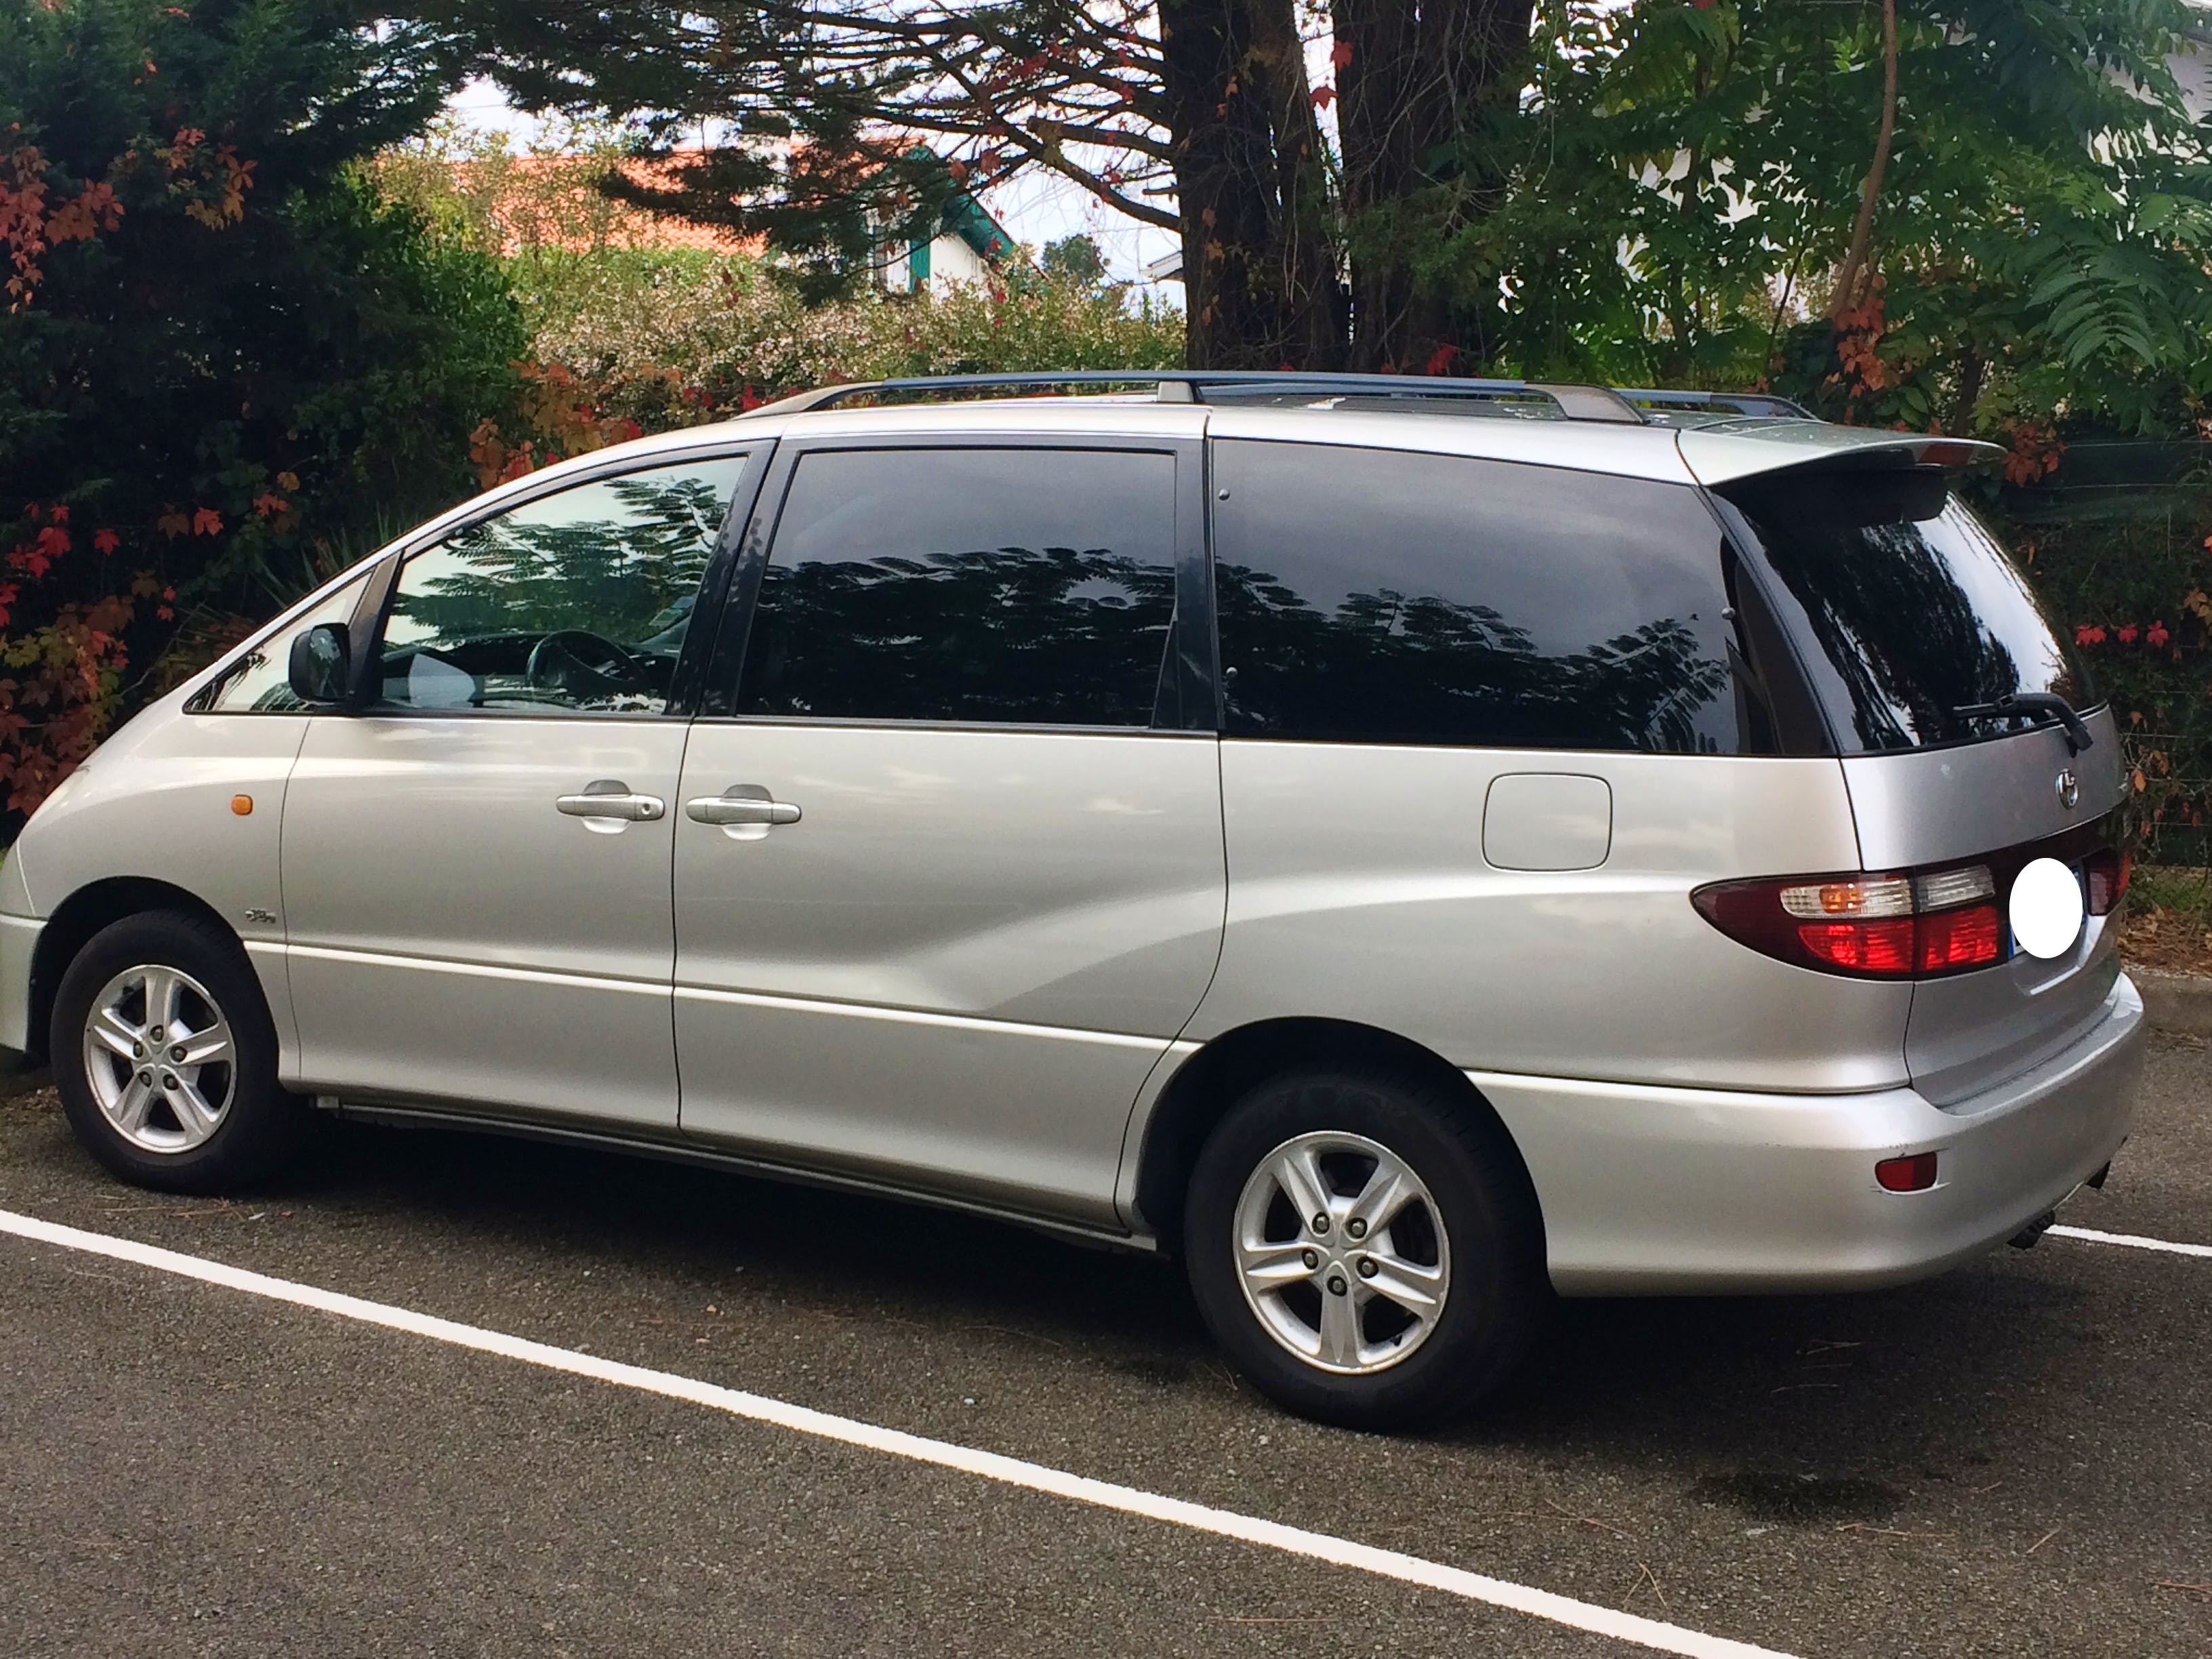 Toyota previa grand monospace 7 places, 2003, Diesel, 7 places